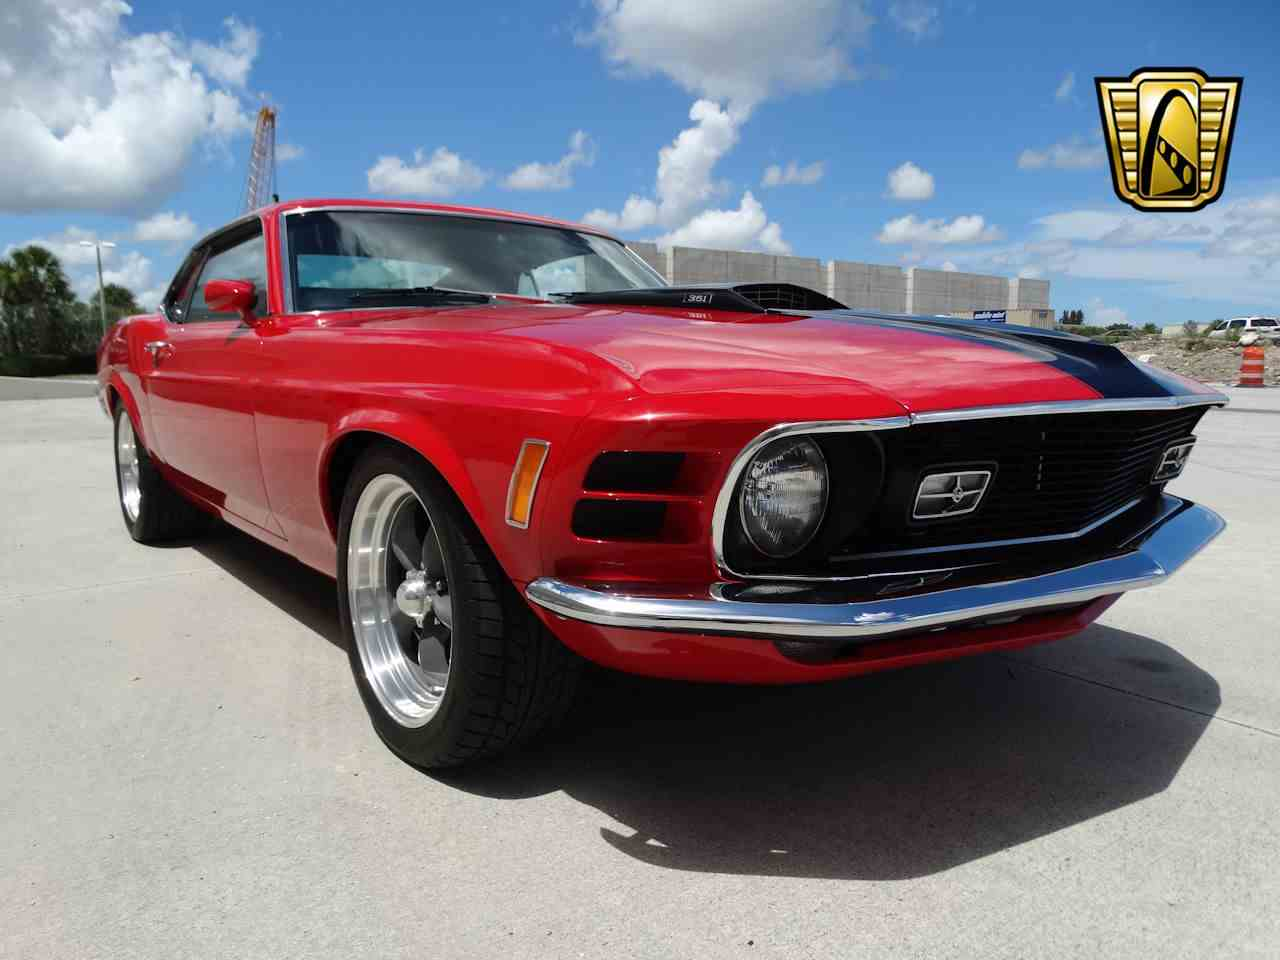 Large Picture of Classic 1970 Ford Mustang located in Florida - $60,000.00 Offered by Gateway Classic Cars - Fort Lauderdale - LG4A